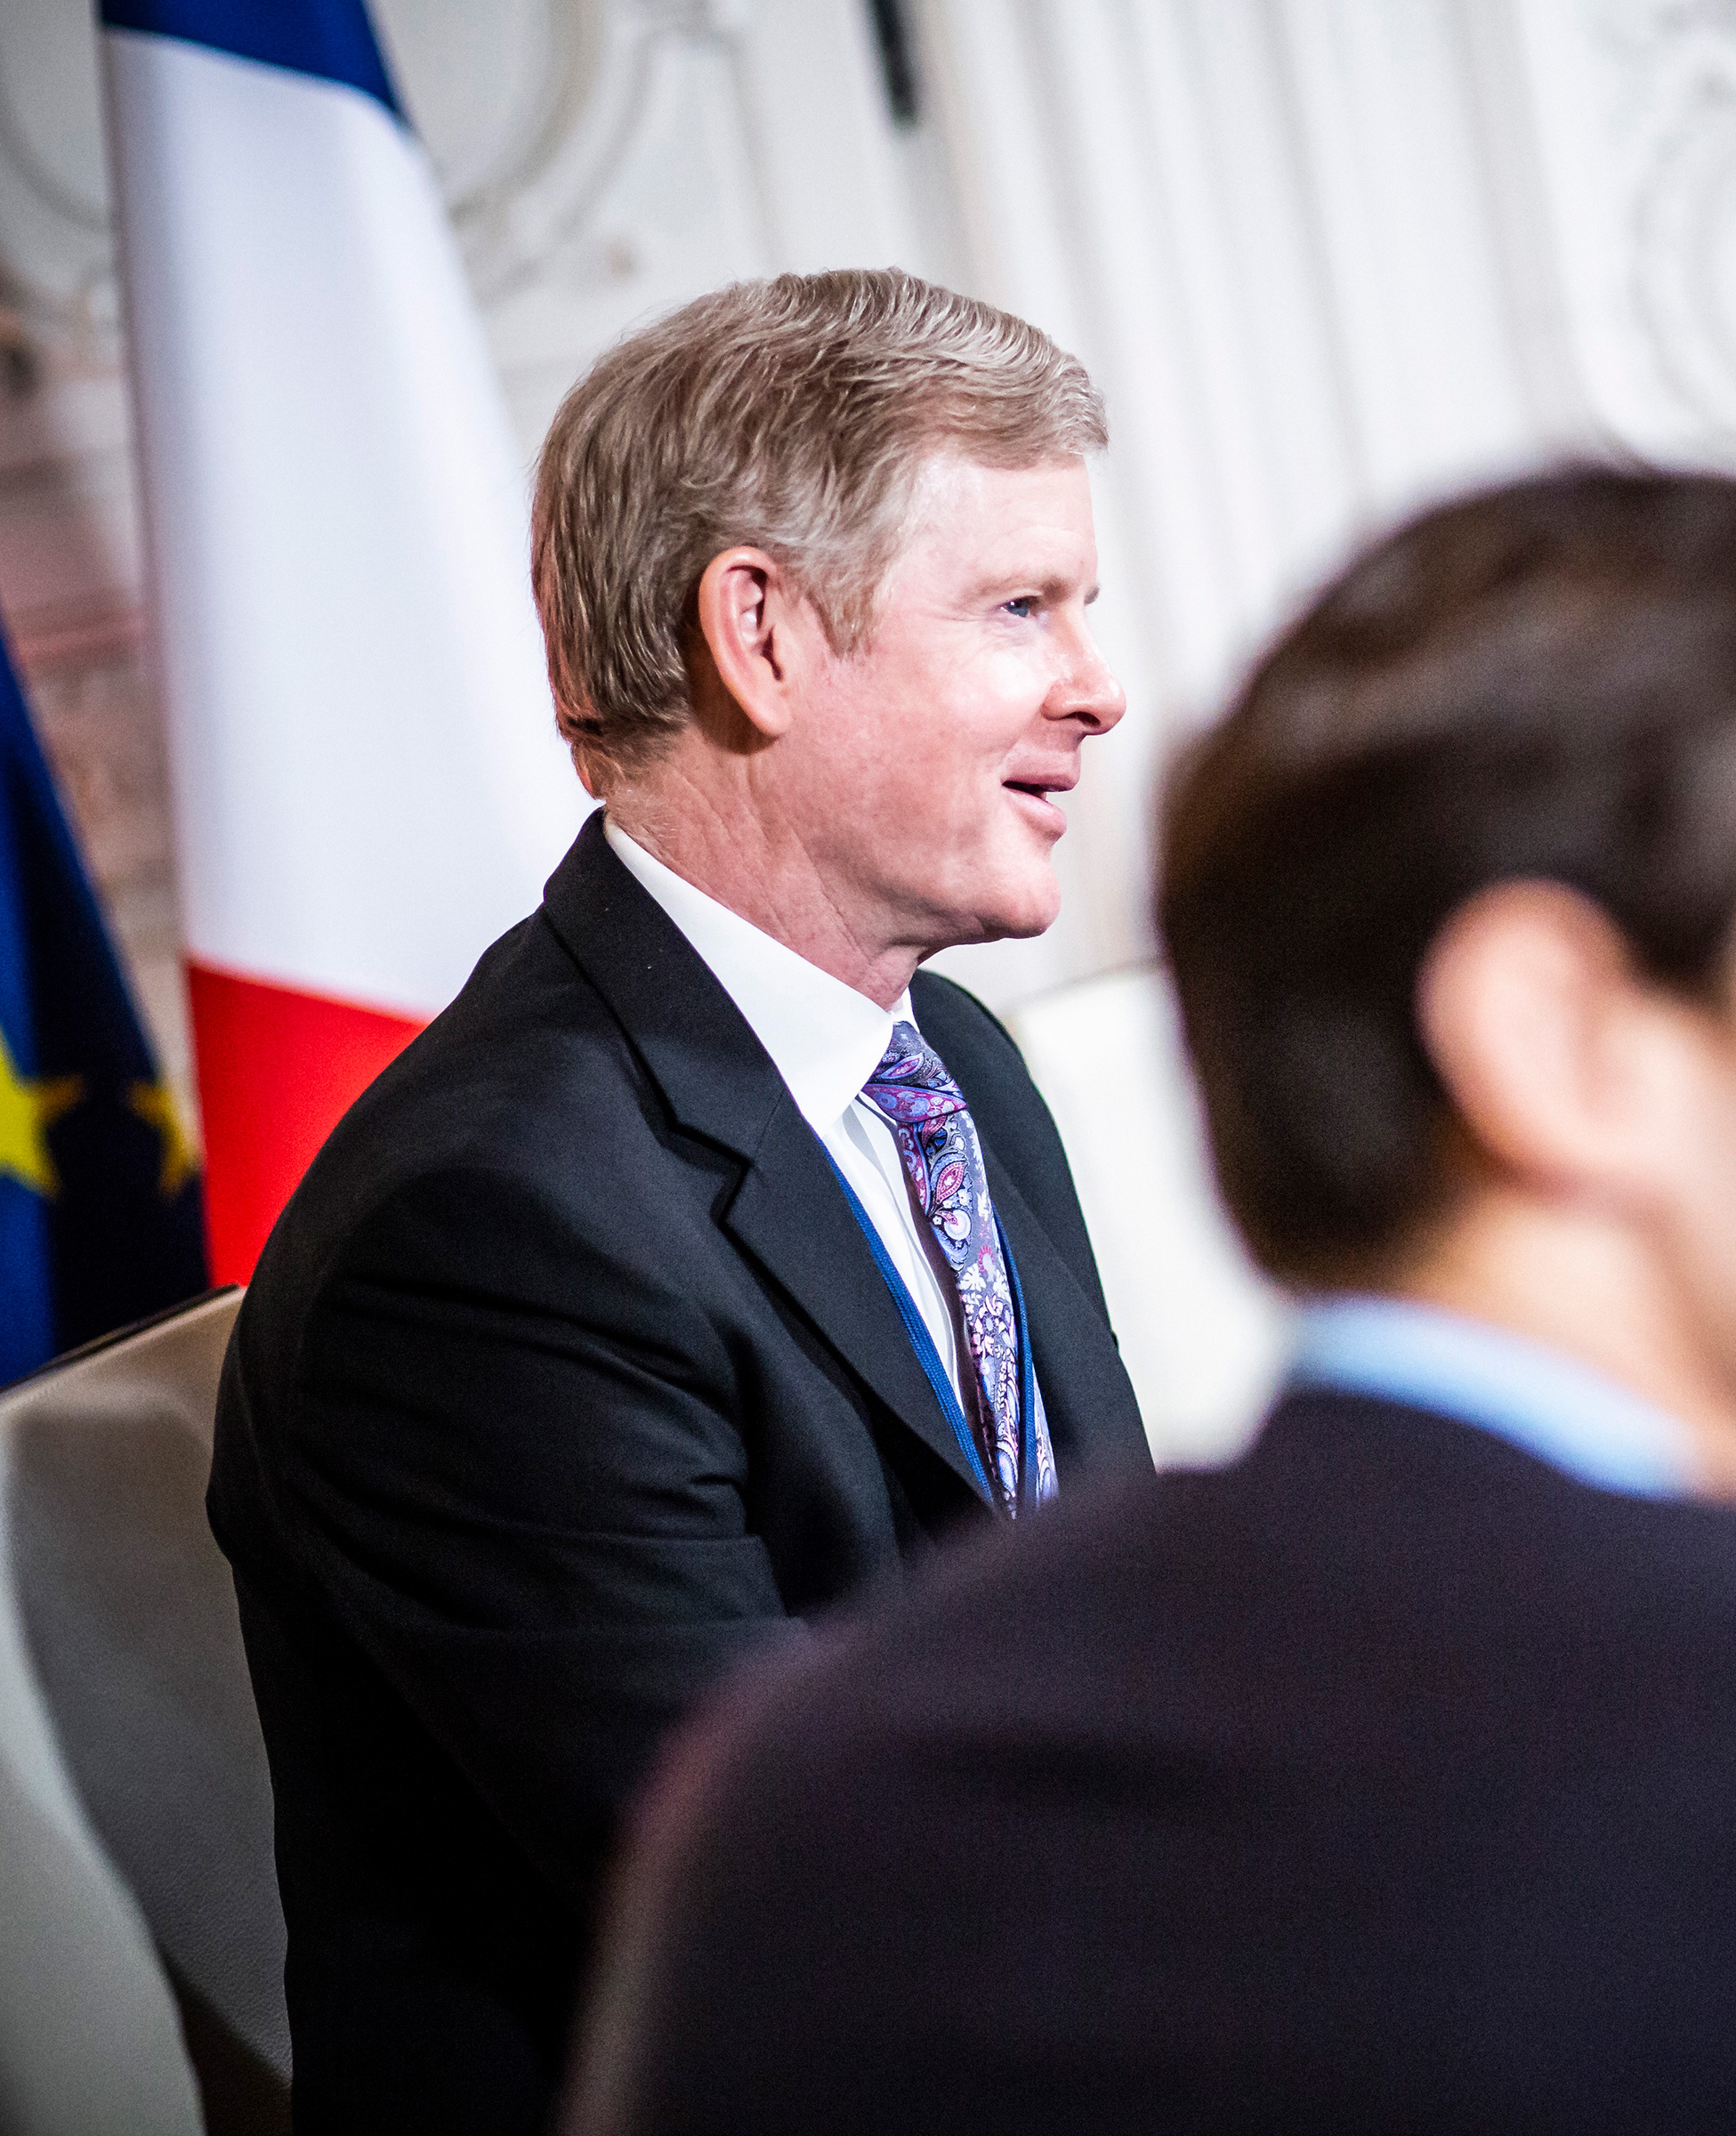 David S. Taylor, CEO of Procter & Gamble, vists with President Emmanuel Macron in France on Jan. 21, 2019.